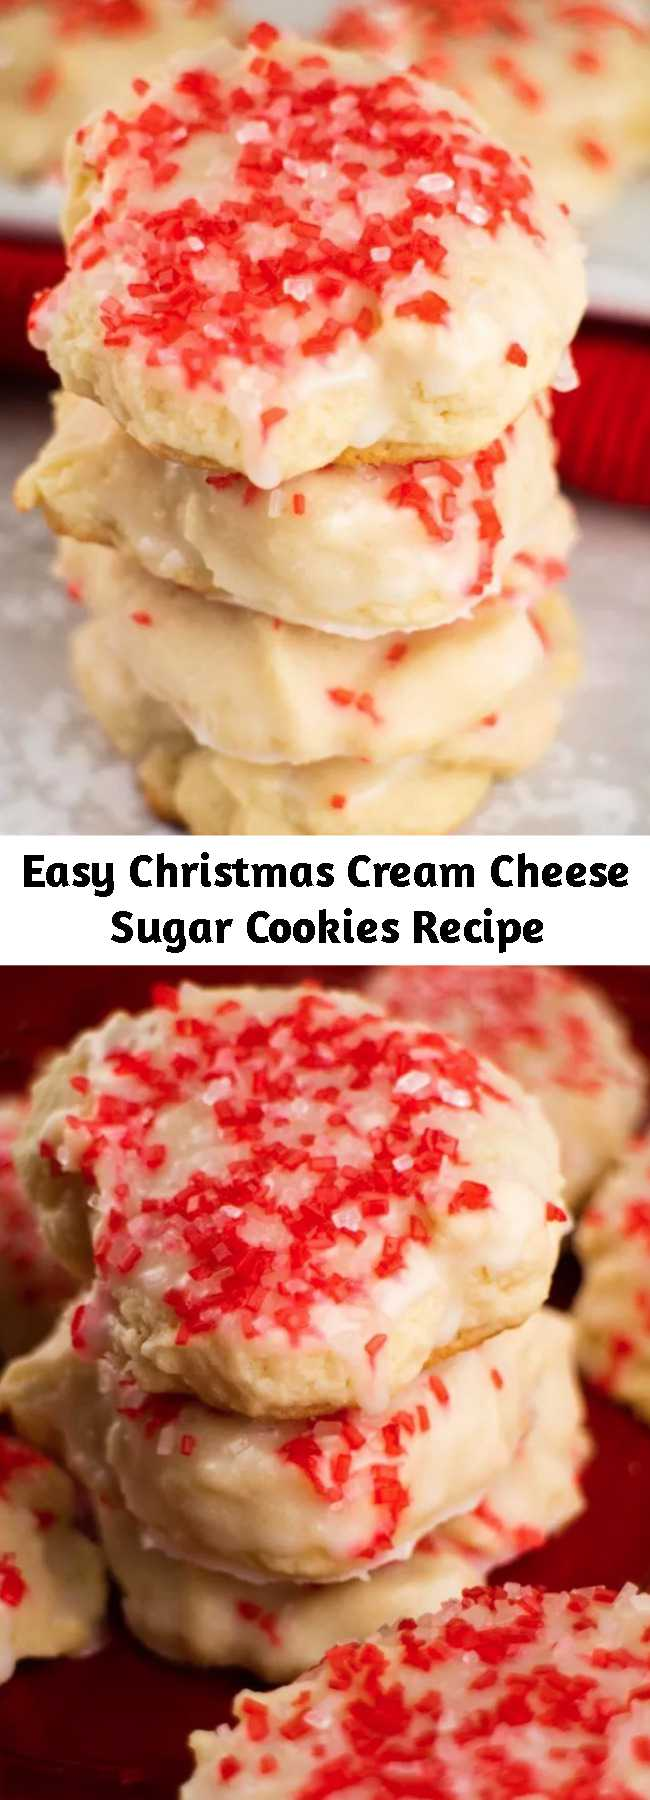 Easy Christmas Cream Cheese Sugar Cookies Recipe - CREAM CHEESE Christmas Sugar Cookies! These easy to make holiday cookies are so soft because they're made with cream cheese! Dip each cookie into vanilla sugar glaze and top with red and white sprinkles!